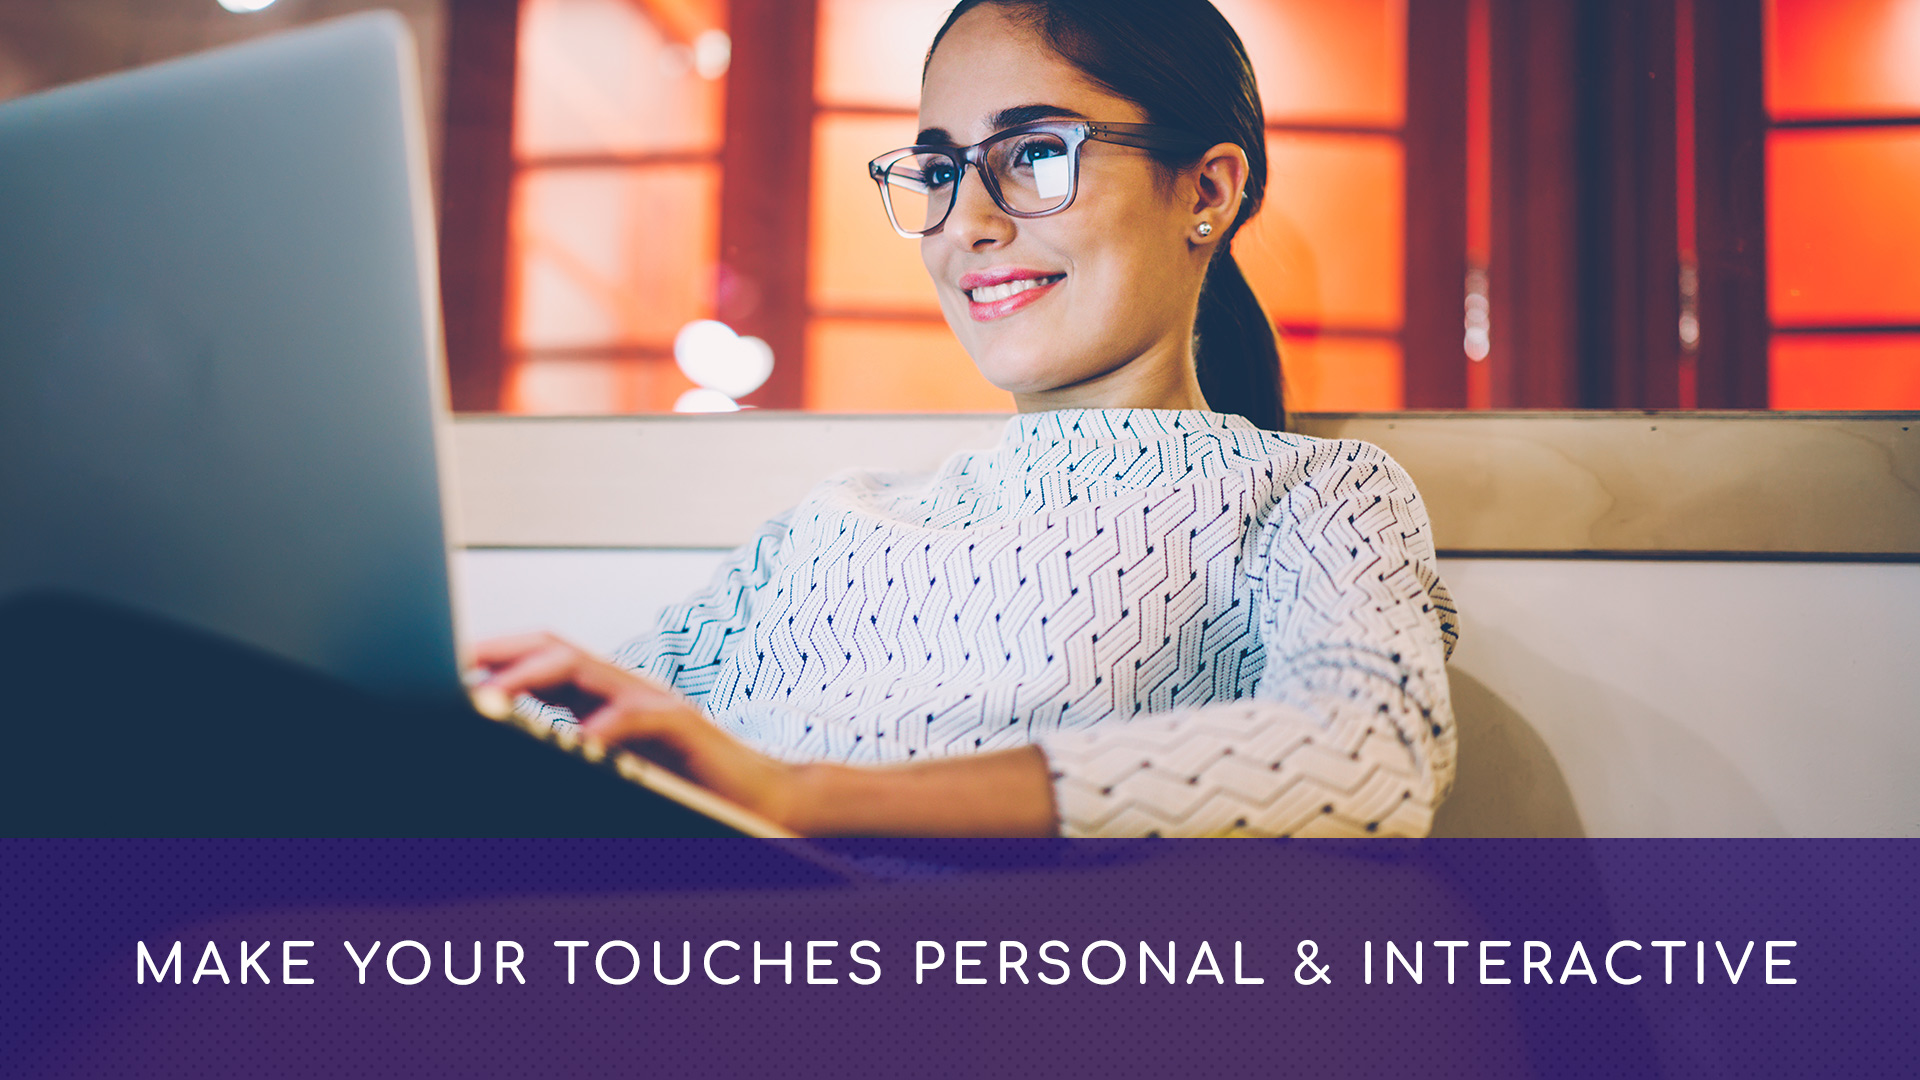 Make Your Touches Personal & Interactive